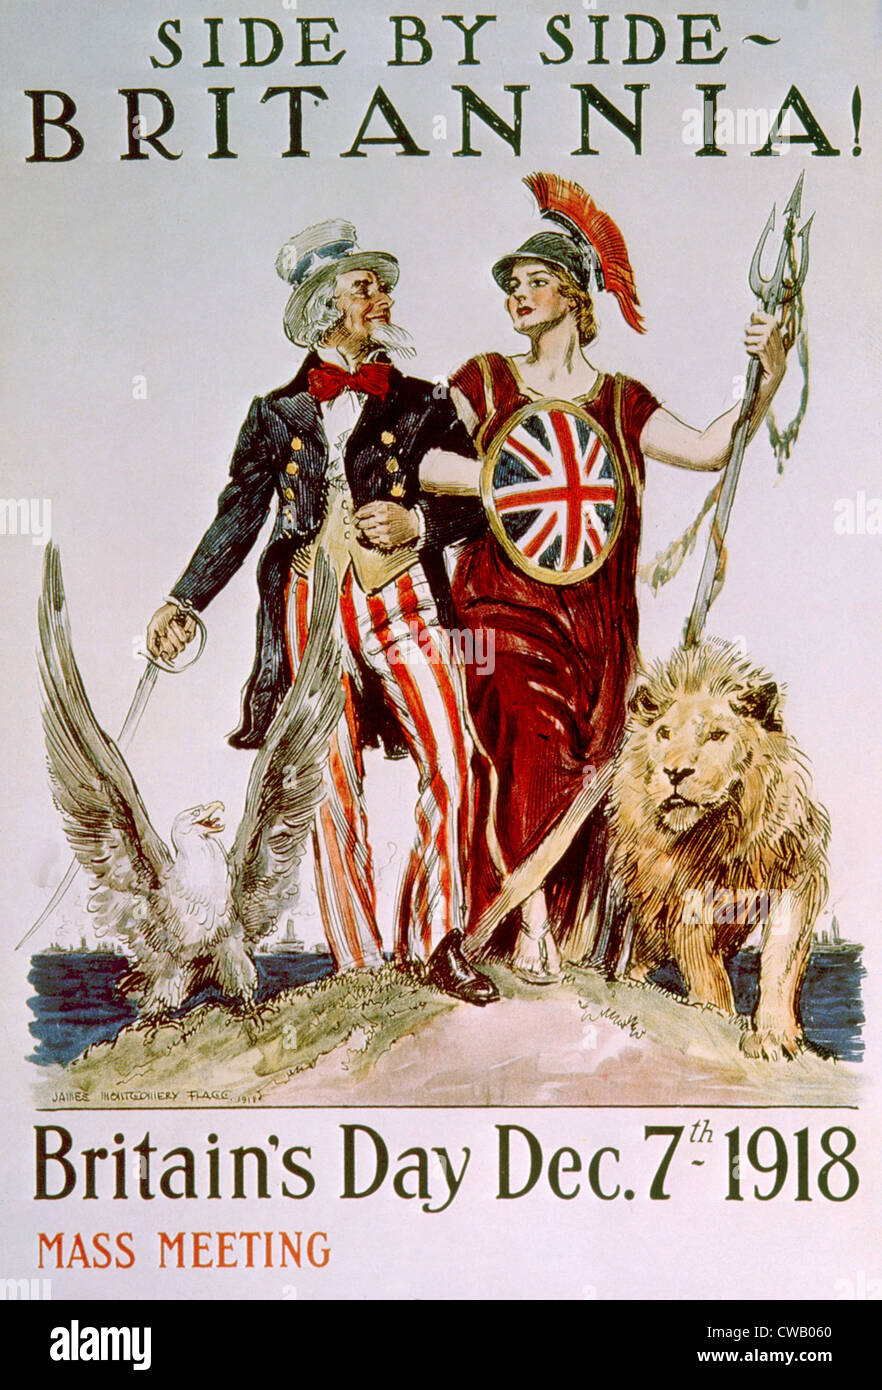 World War I victory poster celebrating the American-British relationship by James Montgomery Flagg, 1918 - Stock Image